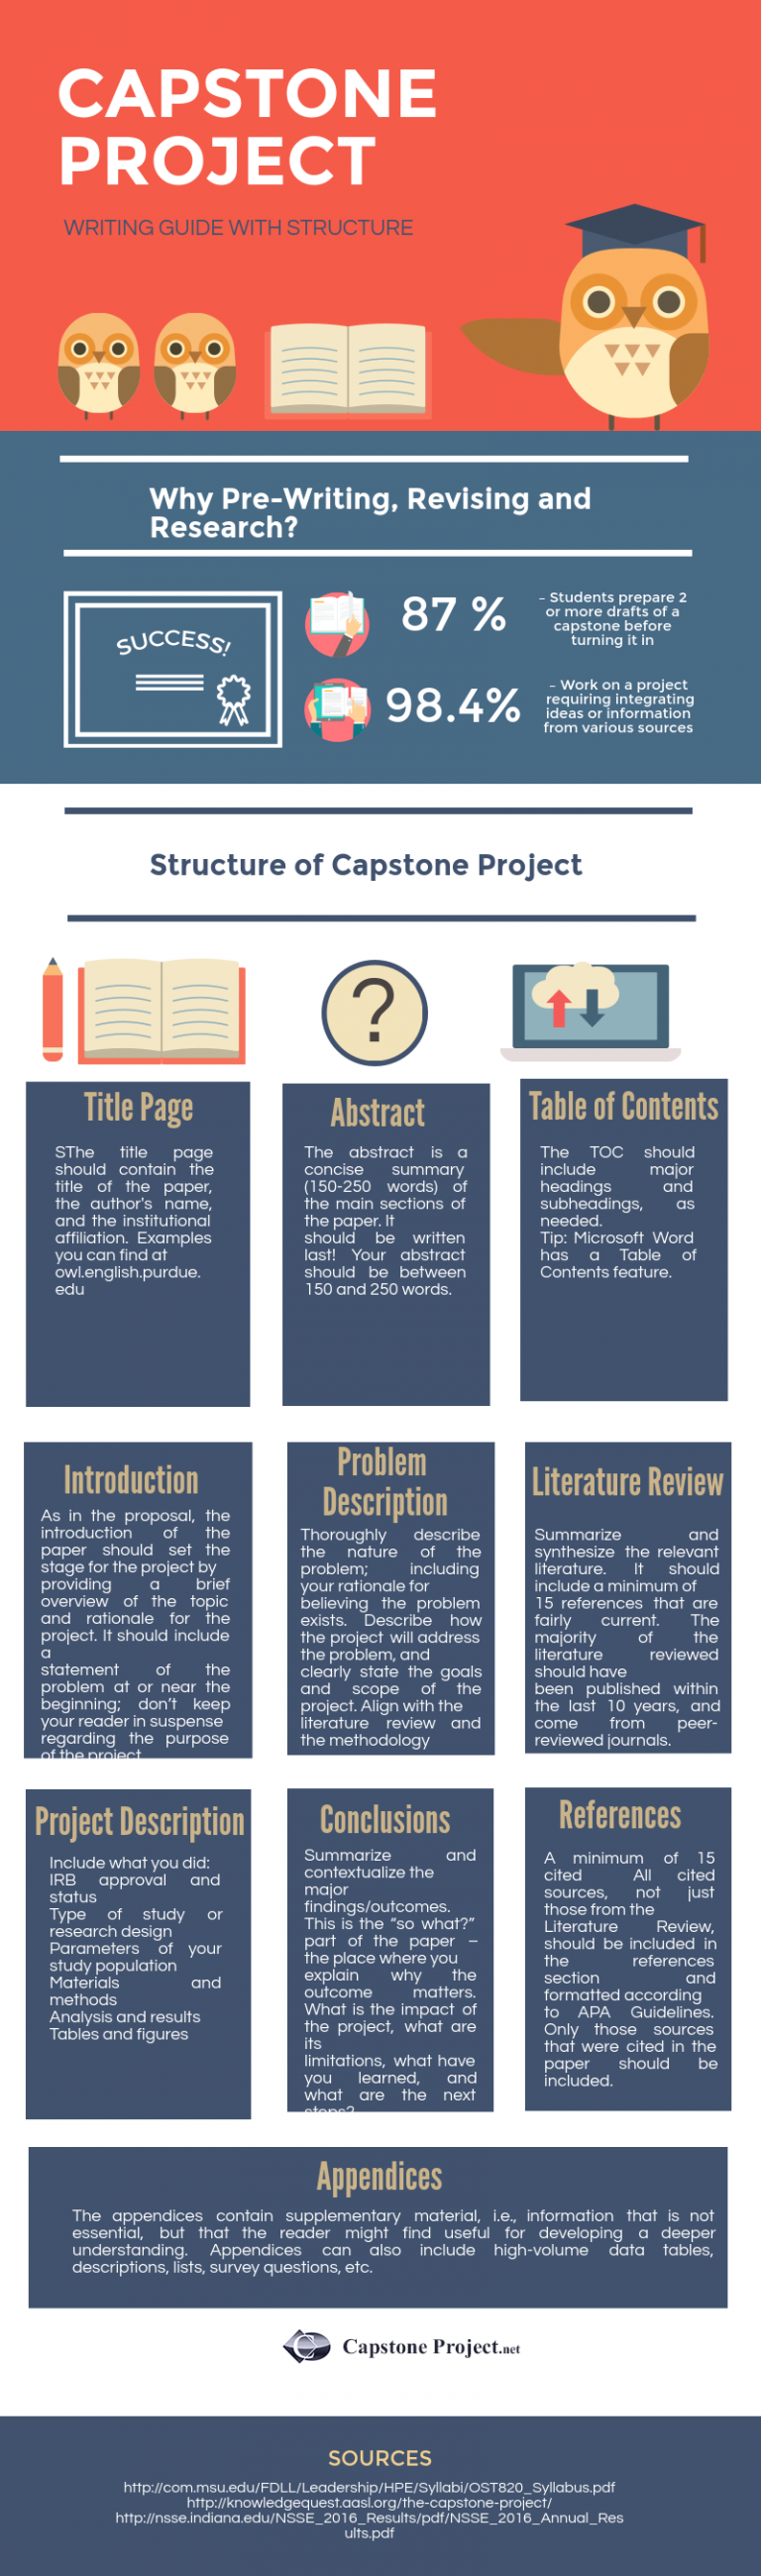 capstone project course syllabus essay Ubc 399: ub capstone course syllabus course information the capstone project since the course is non-seated and delivered asynchronously reflective essay.